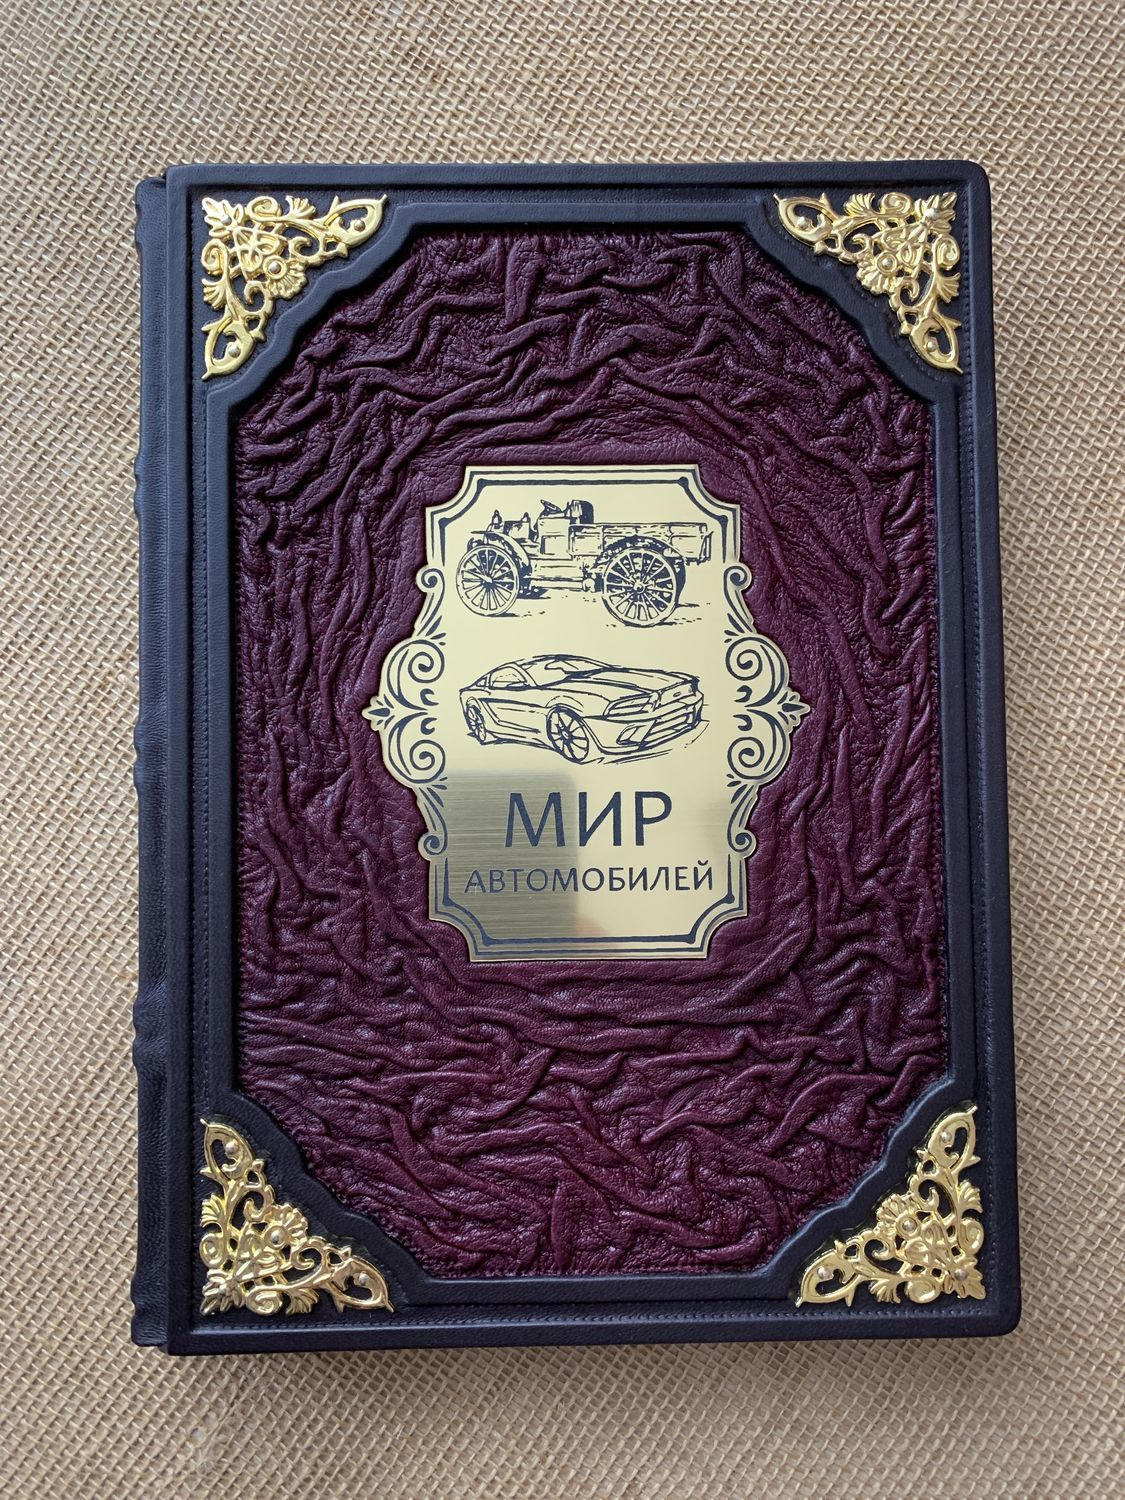 World of cars gift book in leather cover, Gift books, Moscow,  Фото №1